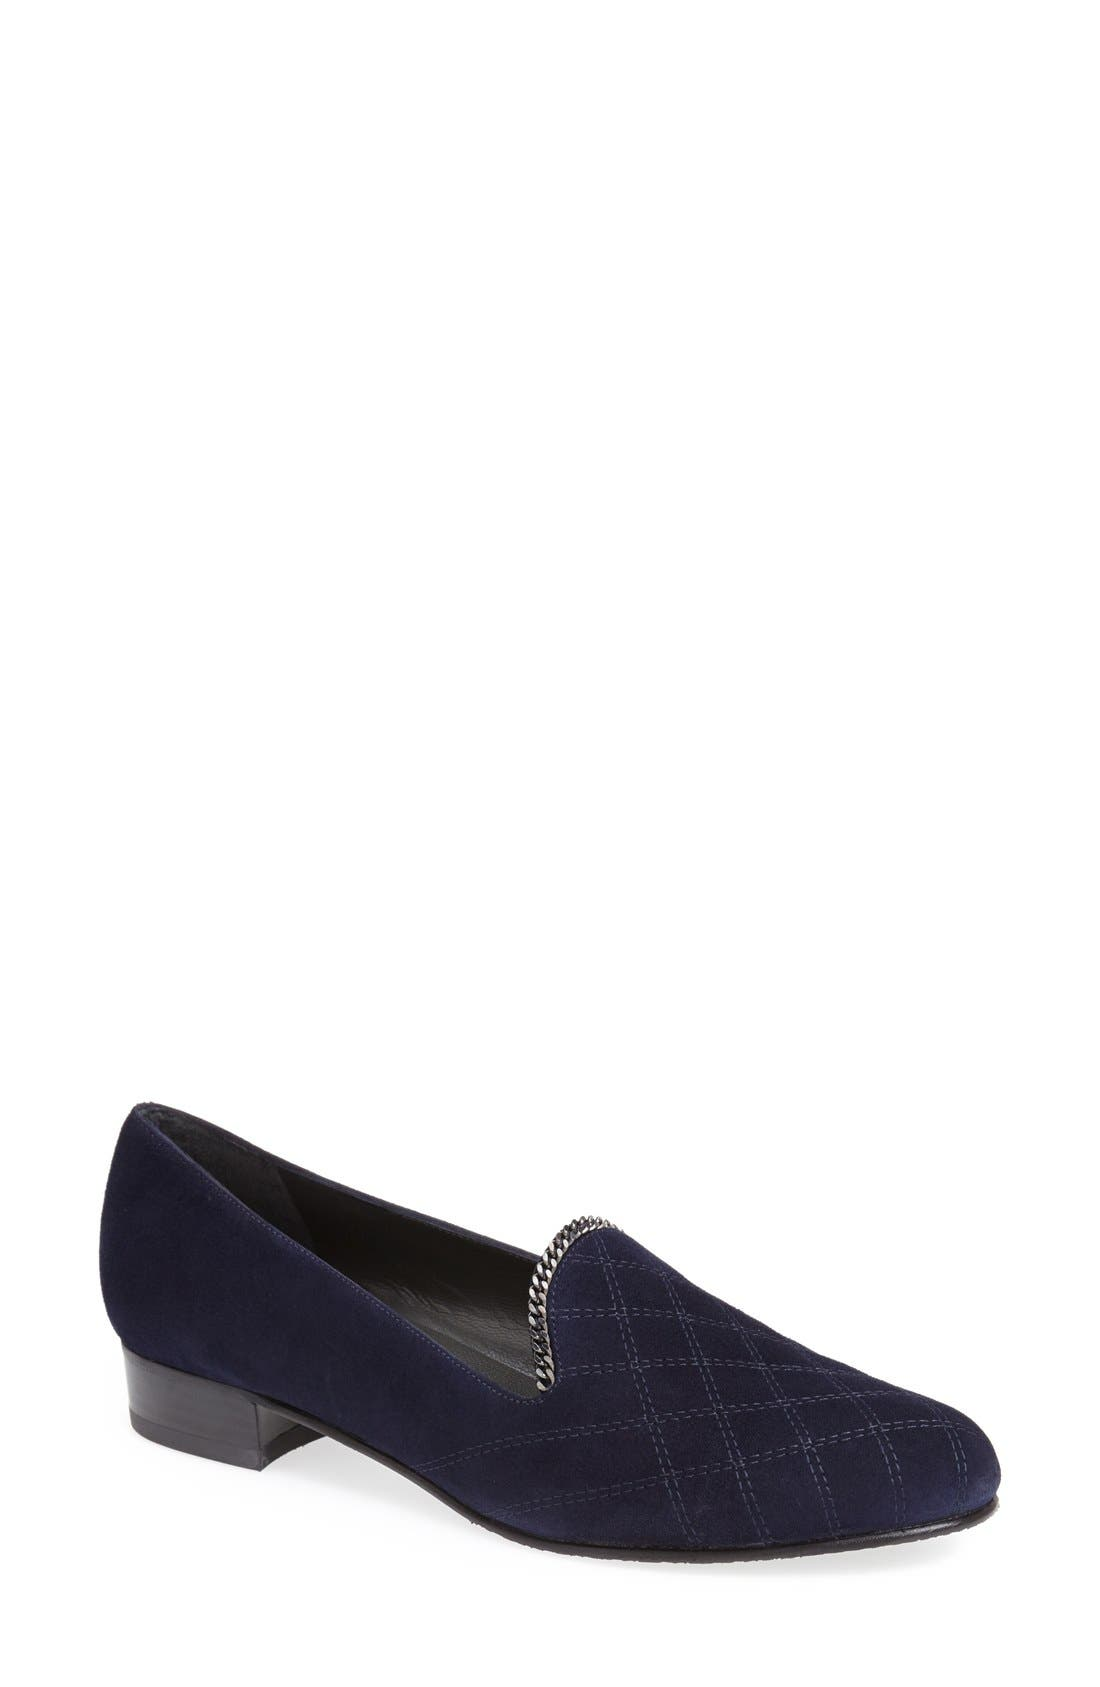 Alternate Image 1 Selected - Stuart Weitzman 'Hallmark' Flat (Women)